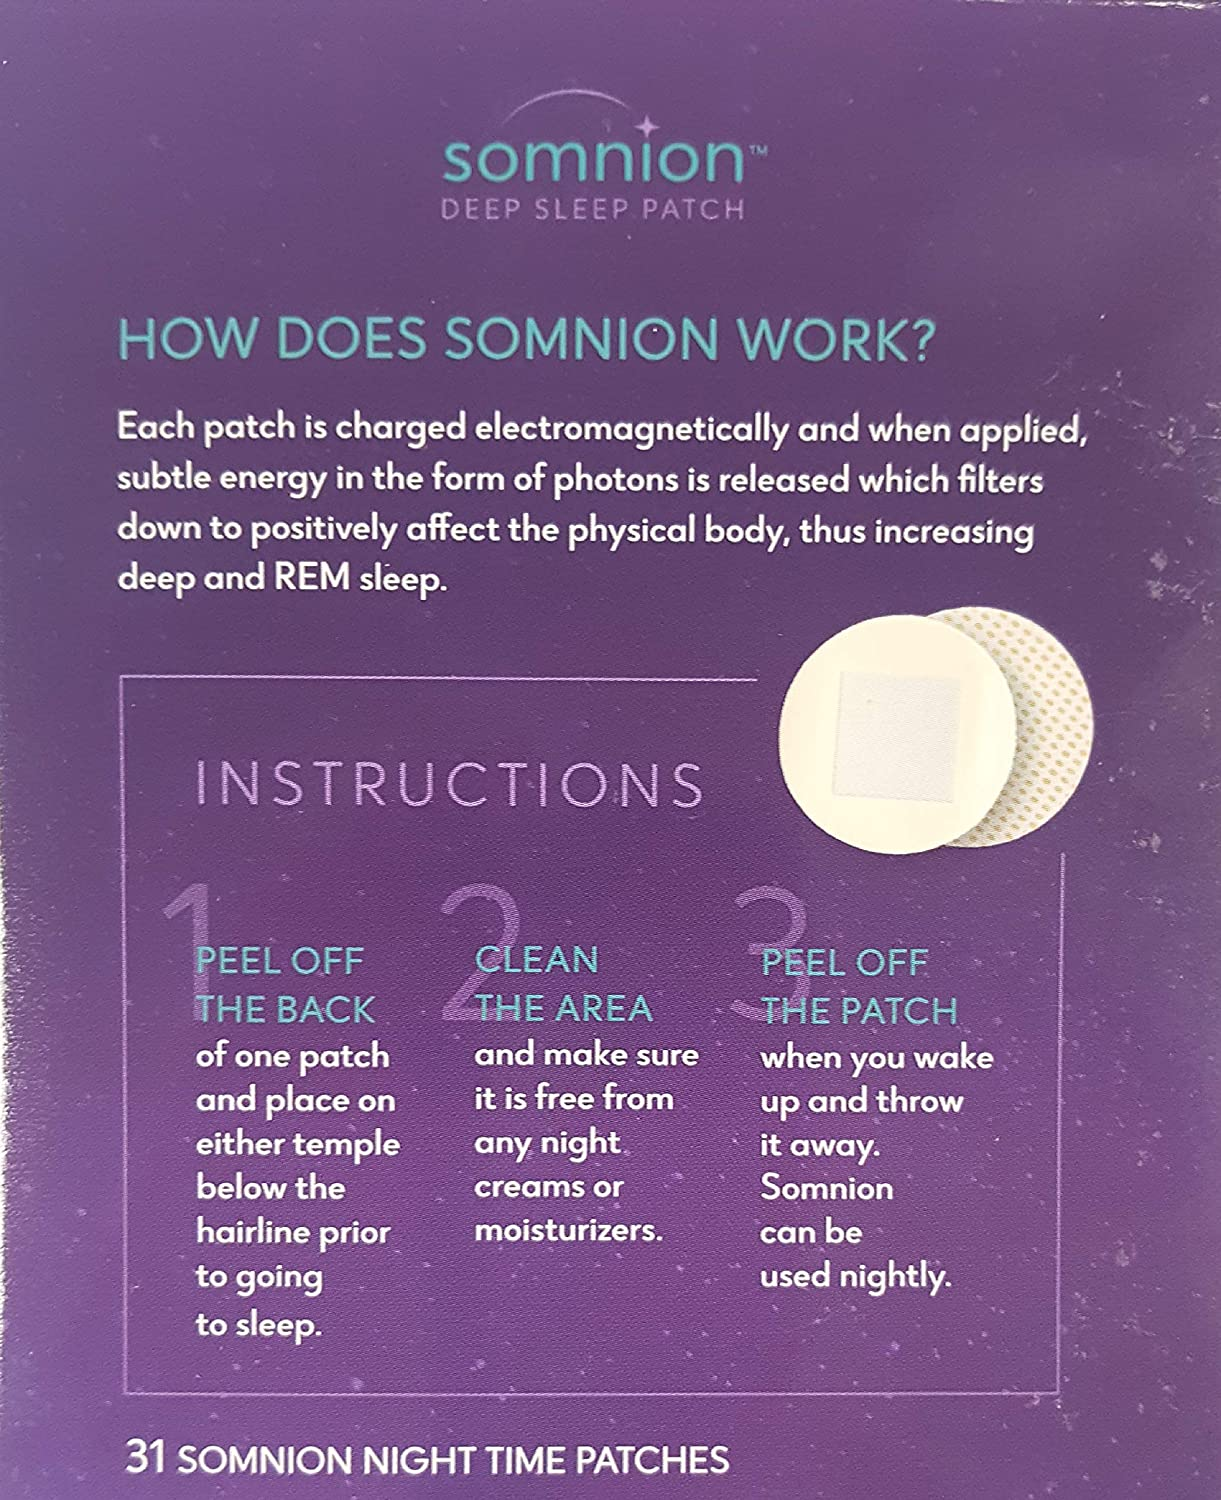 Amazon.com: Somnion Deep Sleep Patch, Increase Deep and REM Sleep, Patented Biofield Photon Technology, No Drugs or Chemicals, 31 Day Supply: Health ...